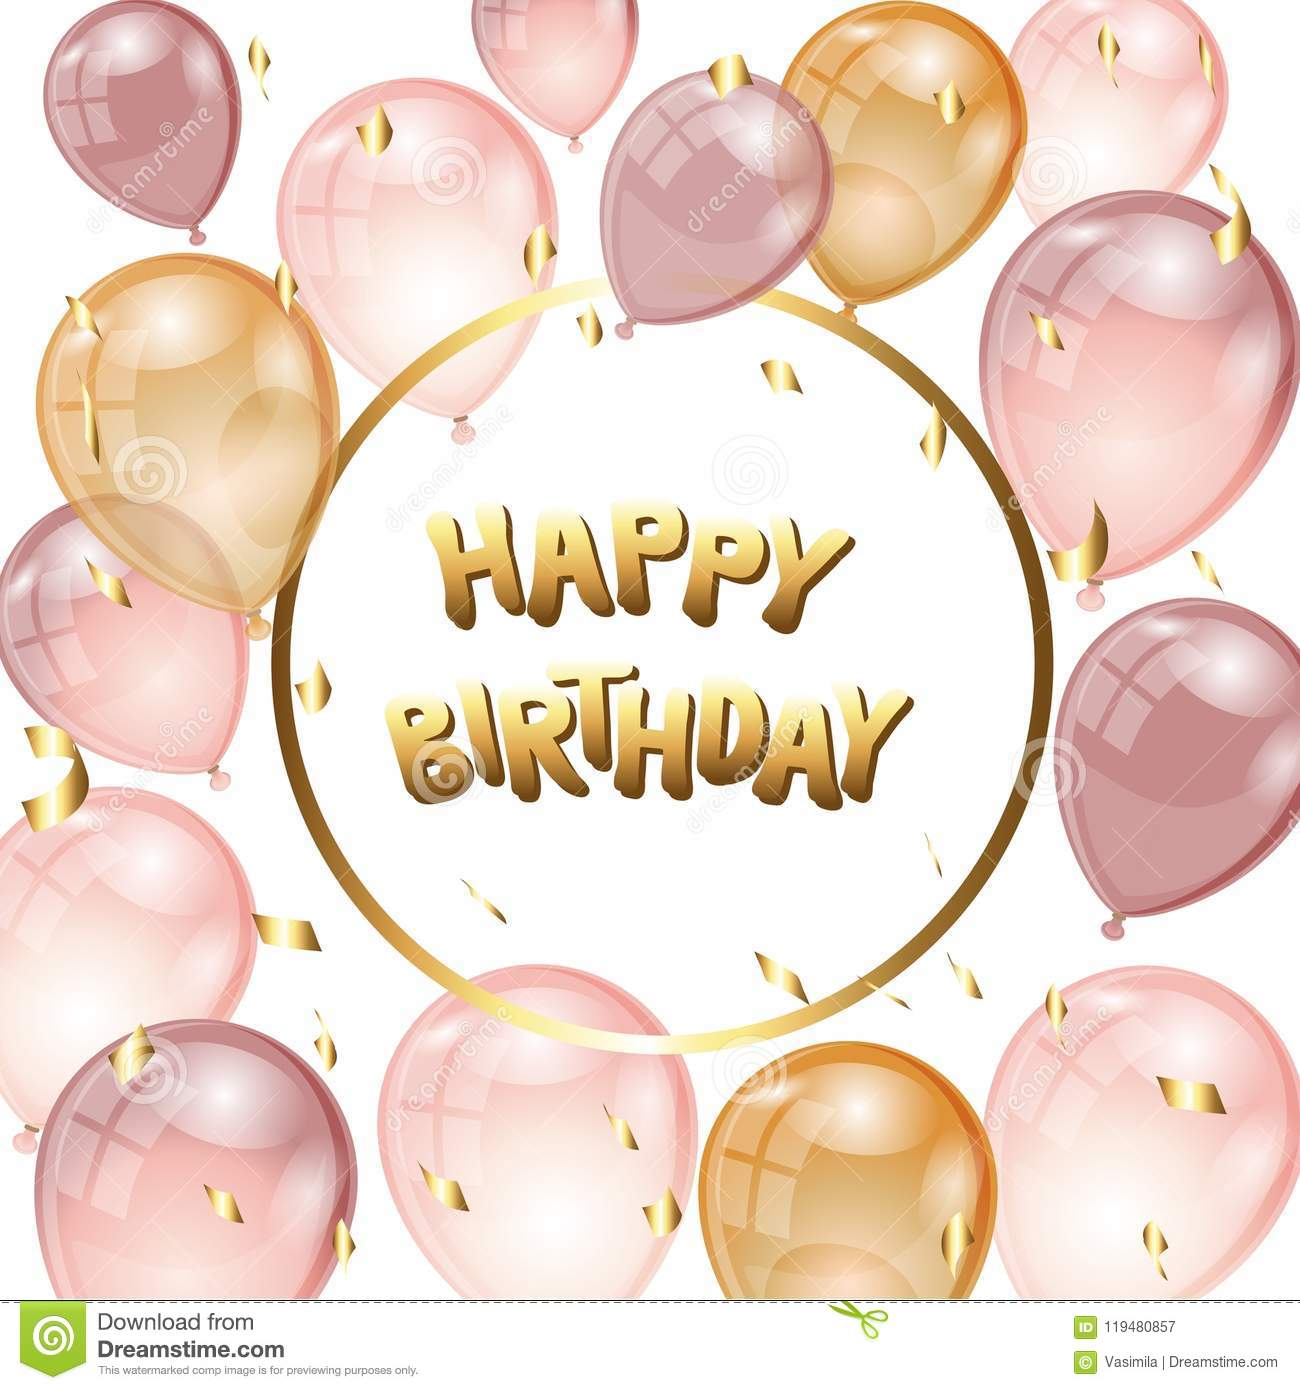 Background With Balloons And Confetti Stock Vector Illustration Of Place Holiday 119480857